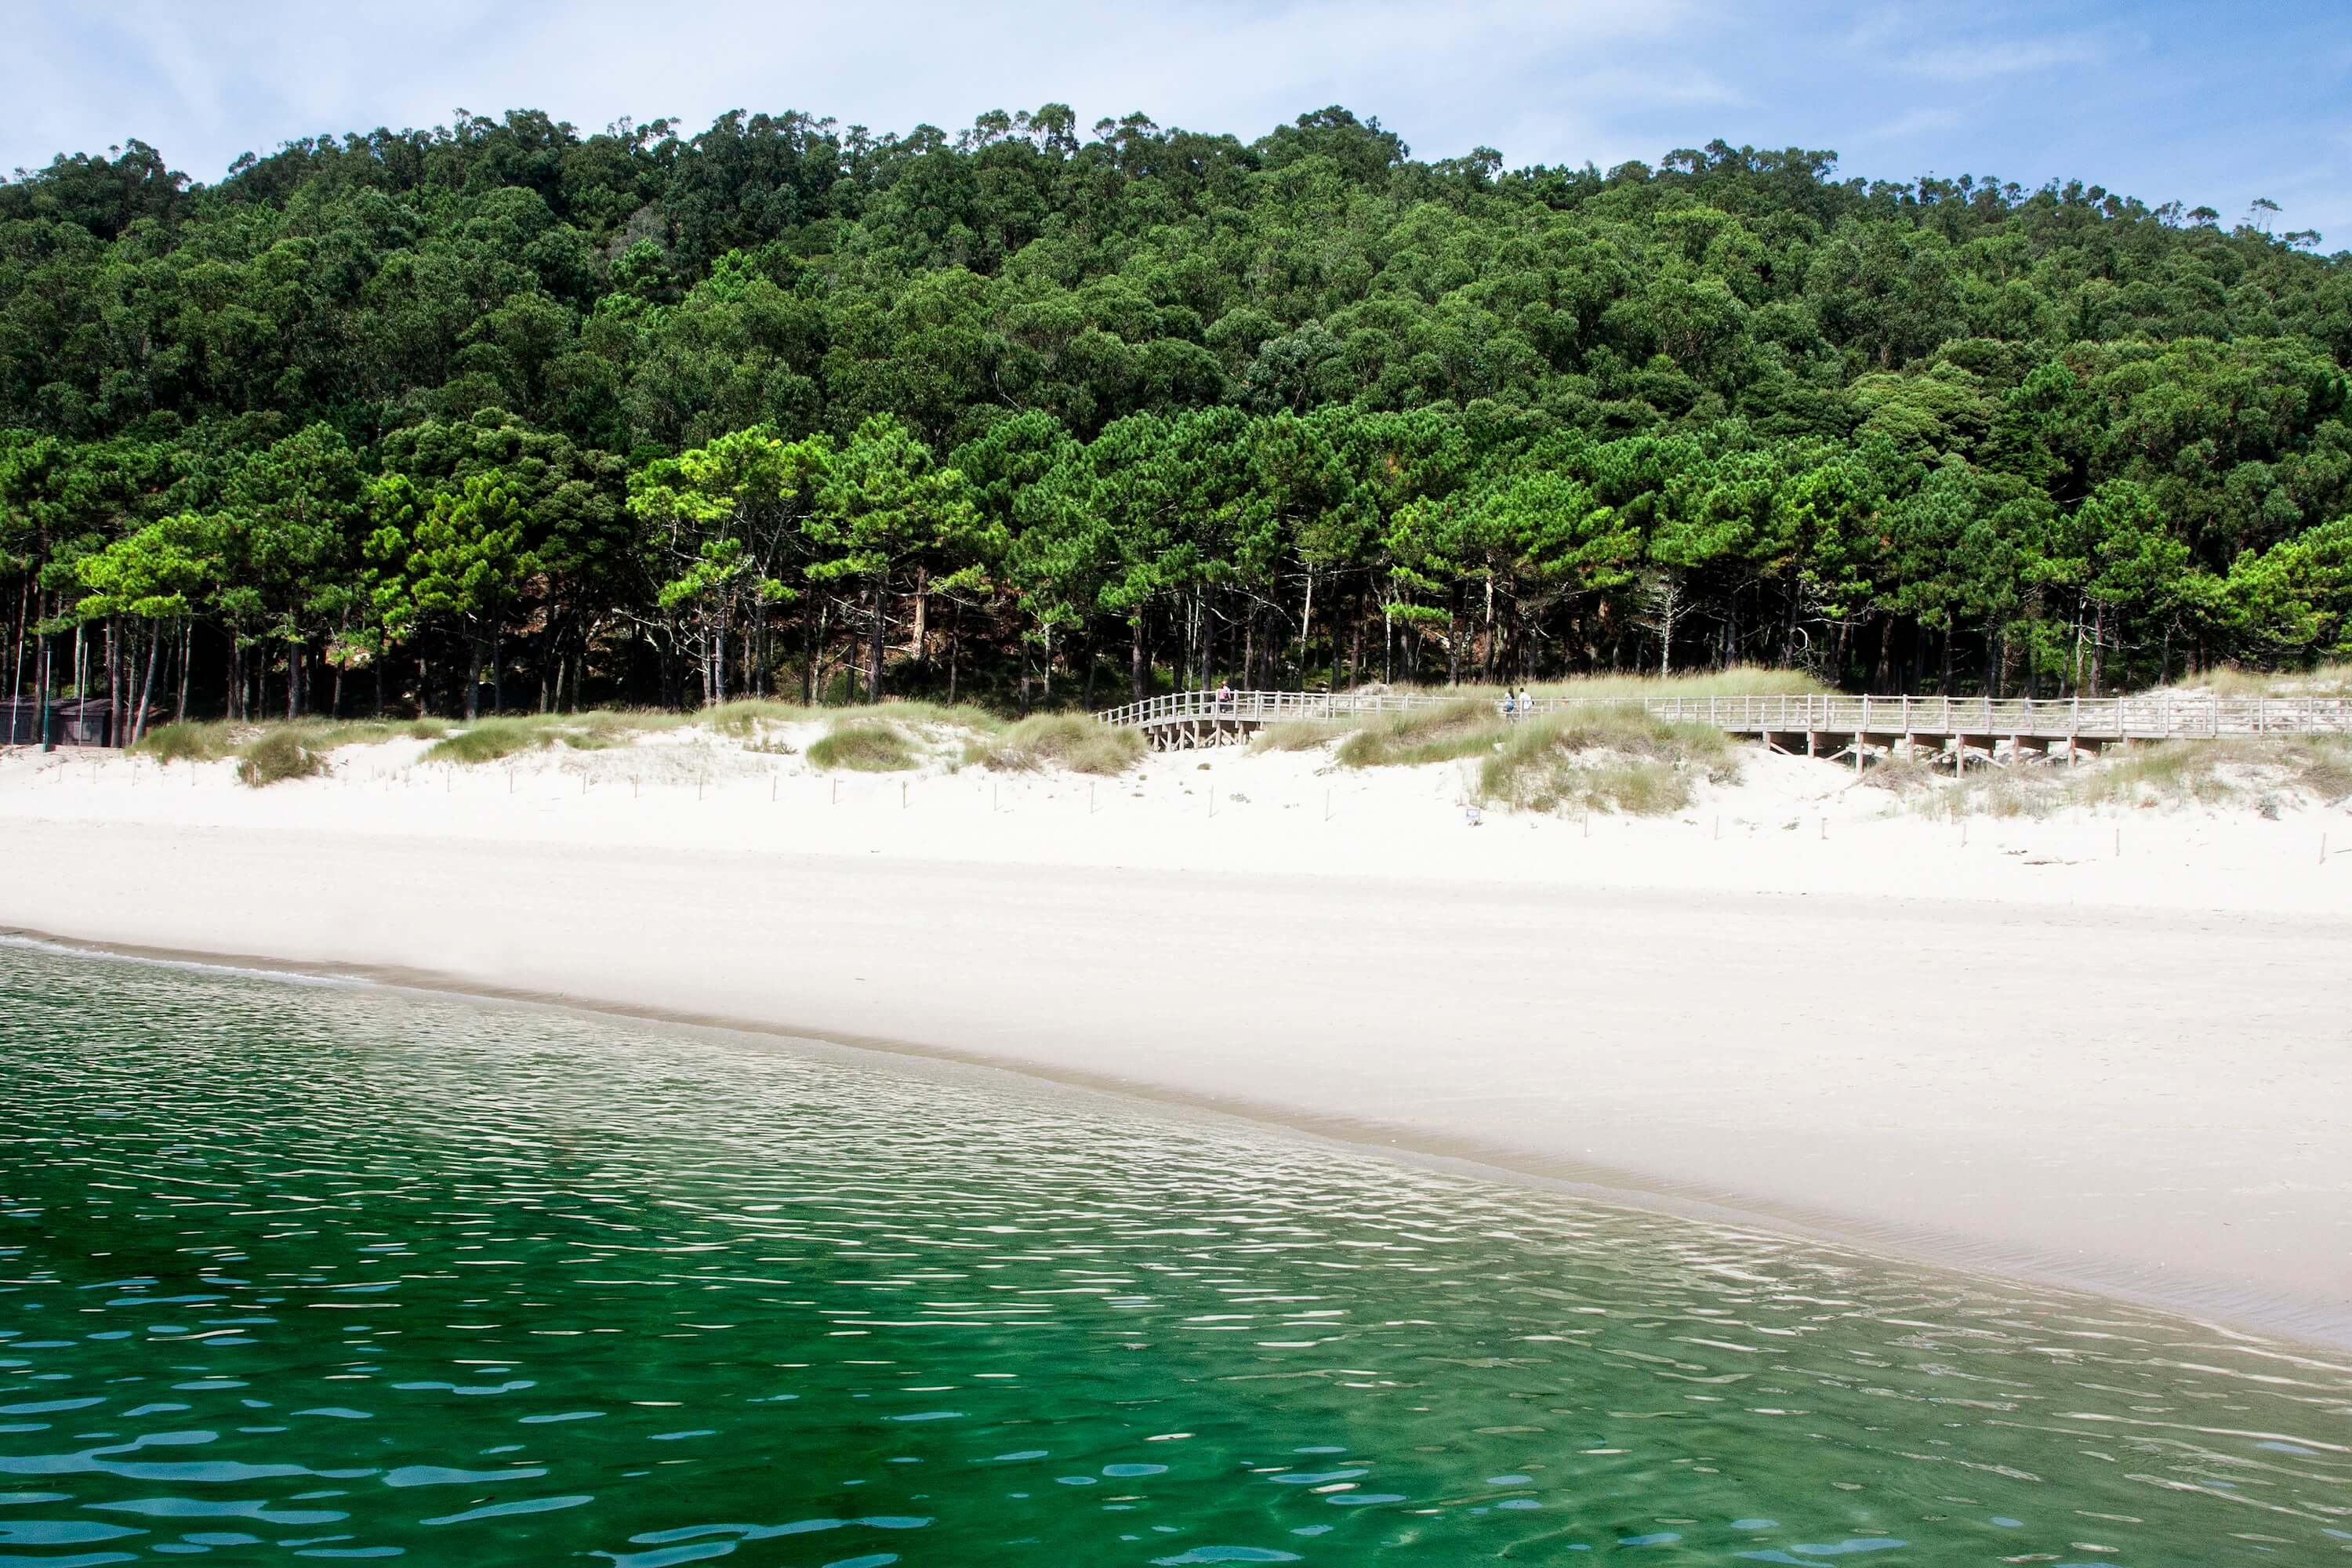 20 photos that will inspire you to visit the Cies Islands - Galicia Travel Spain Beautiful View of Rodas Beach